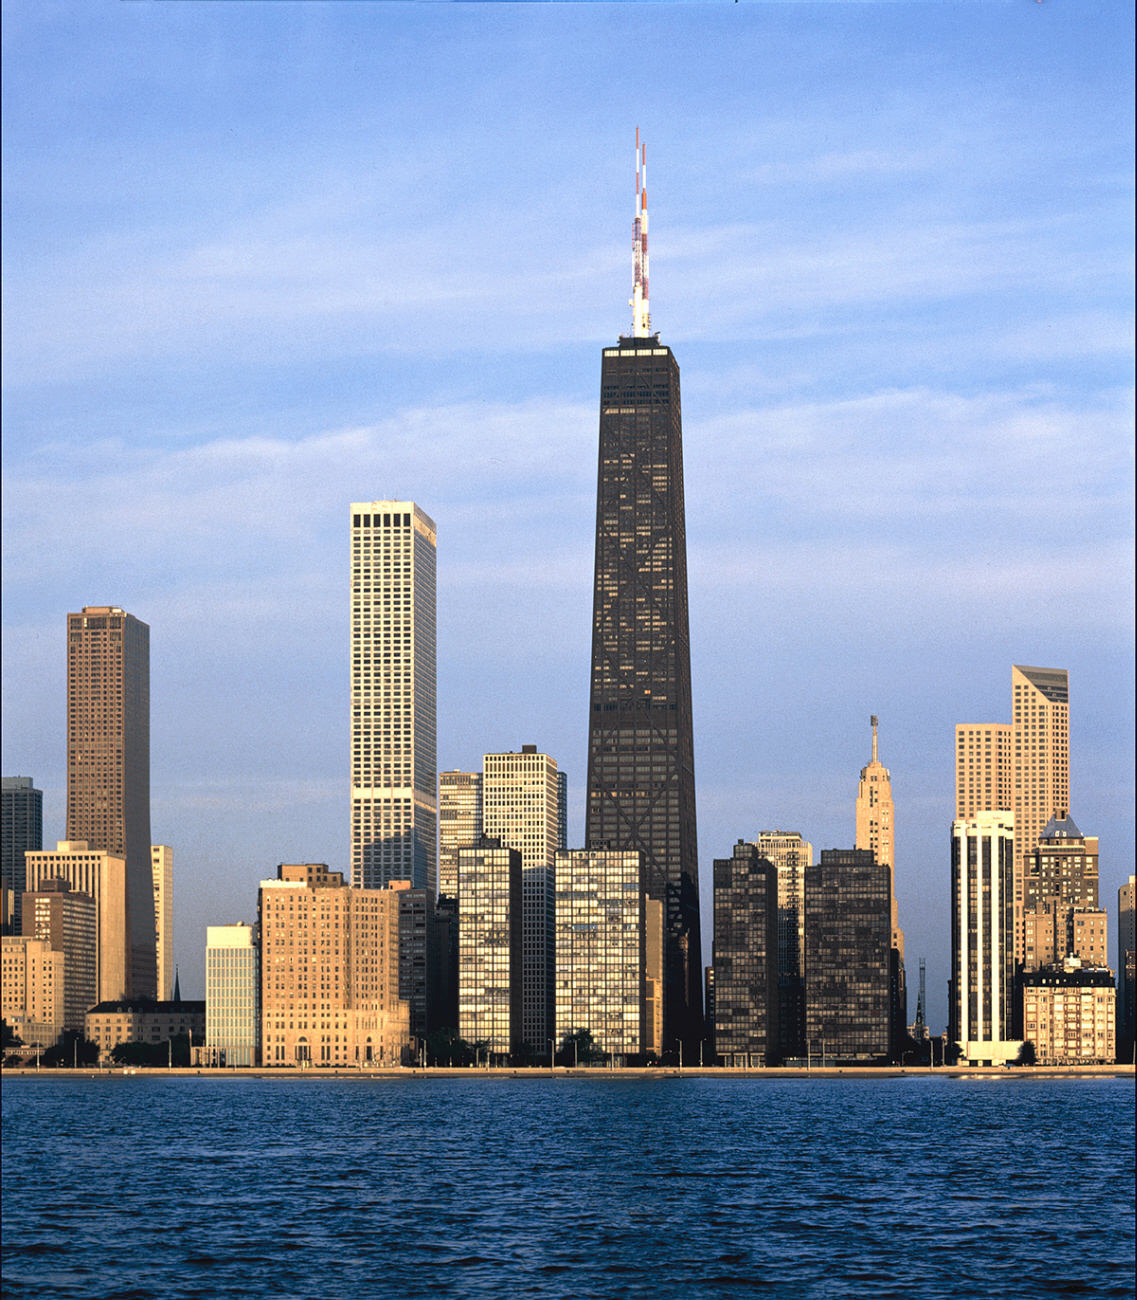 John Hancock Center, Chicago, USA, was the world's second highest building when it was built in 1969. It was a collaboration between Fahzul Khan (engineer) and Bruce Graham (architect).